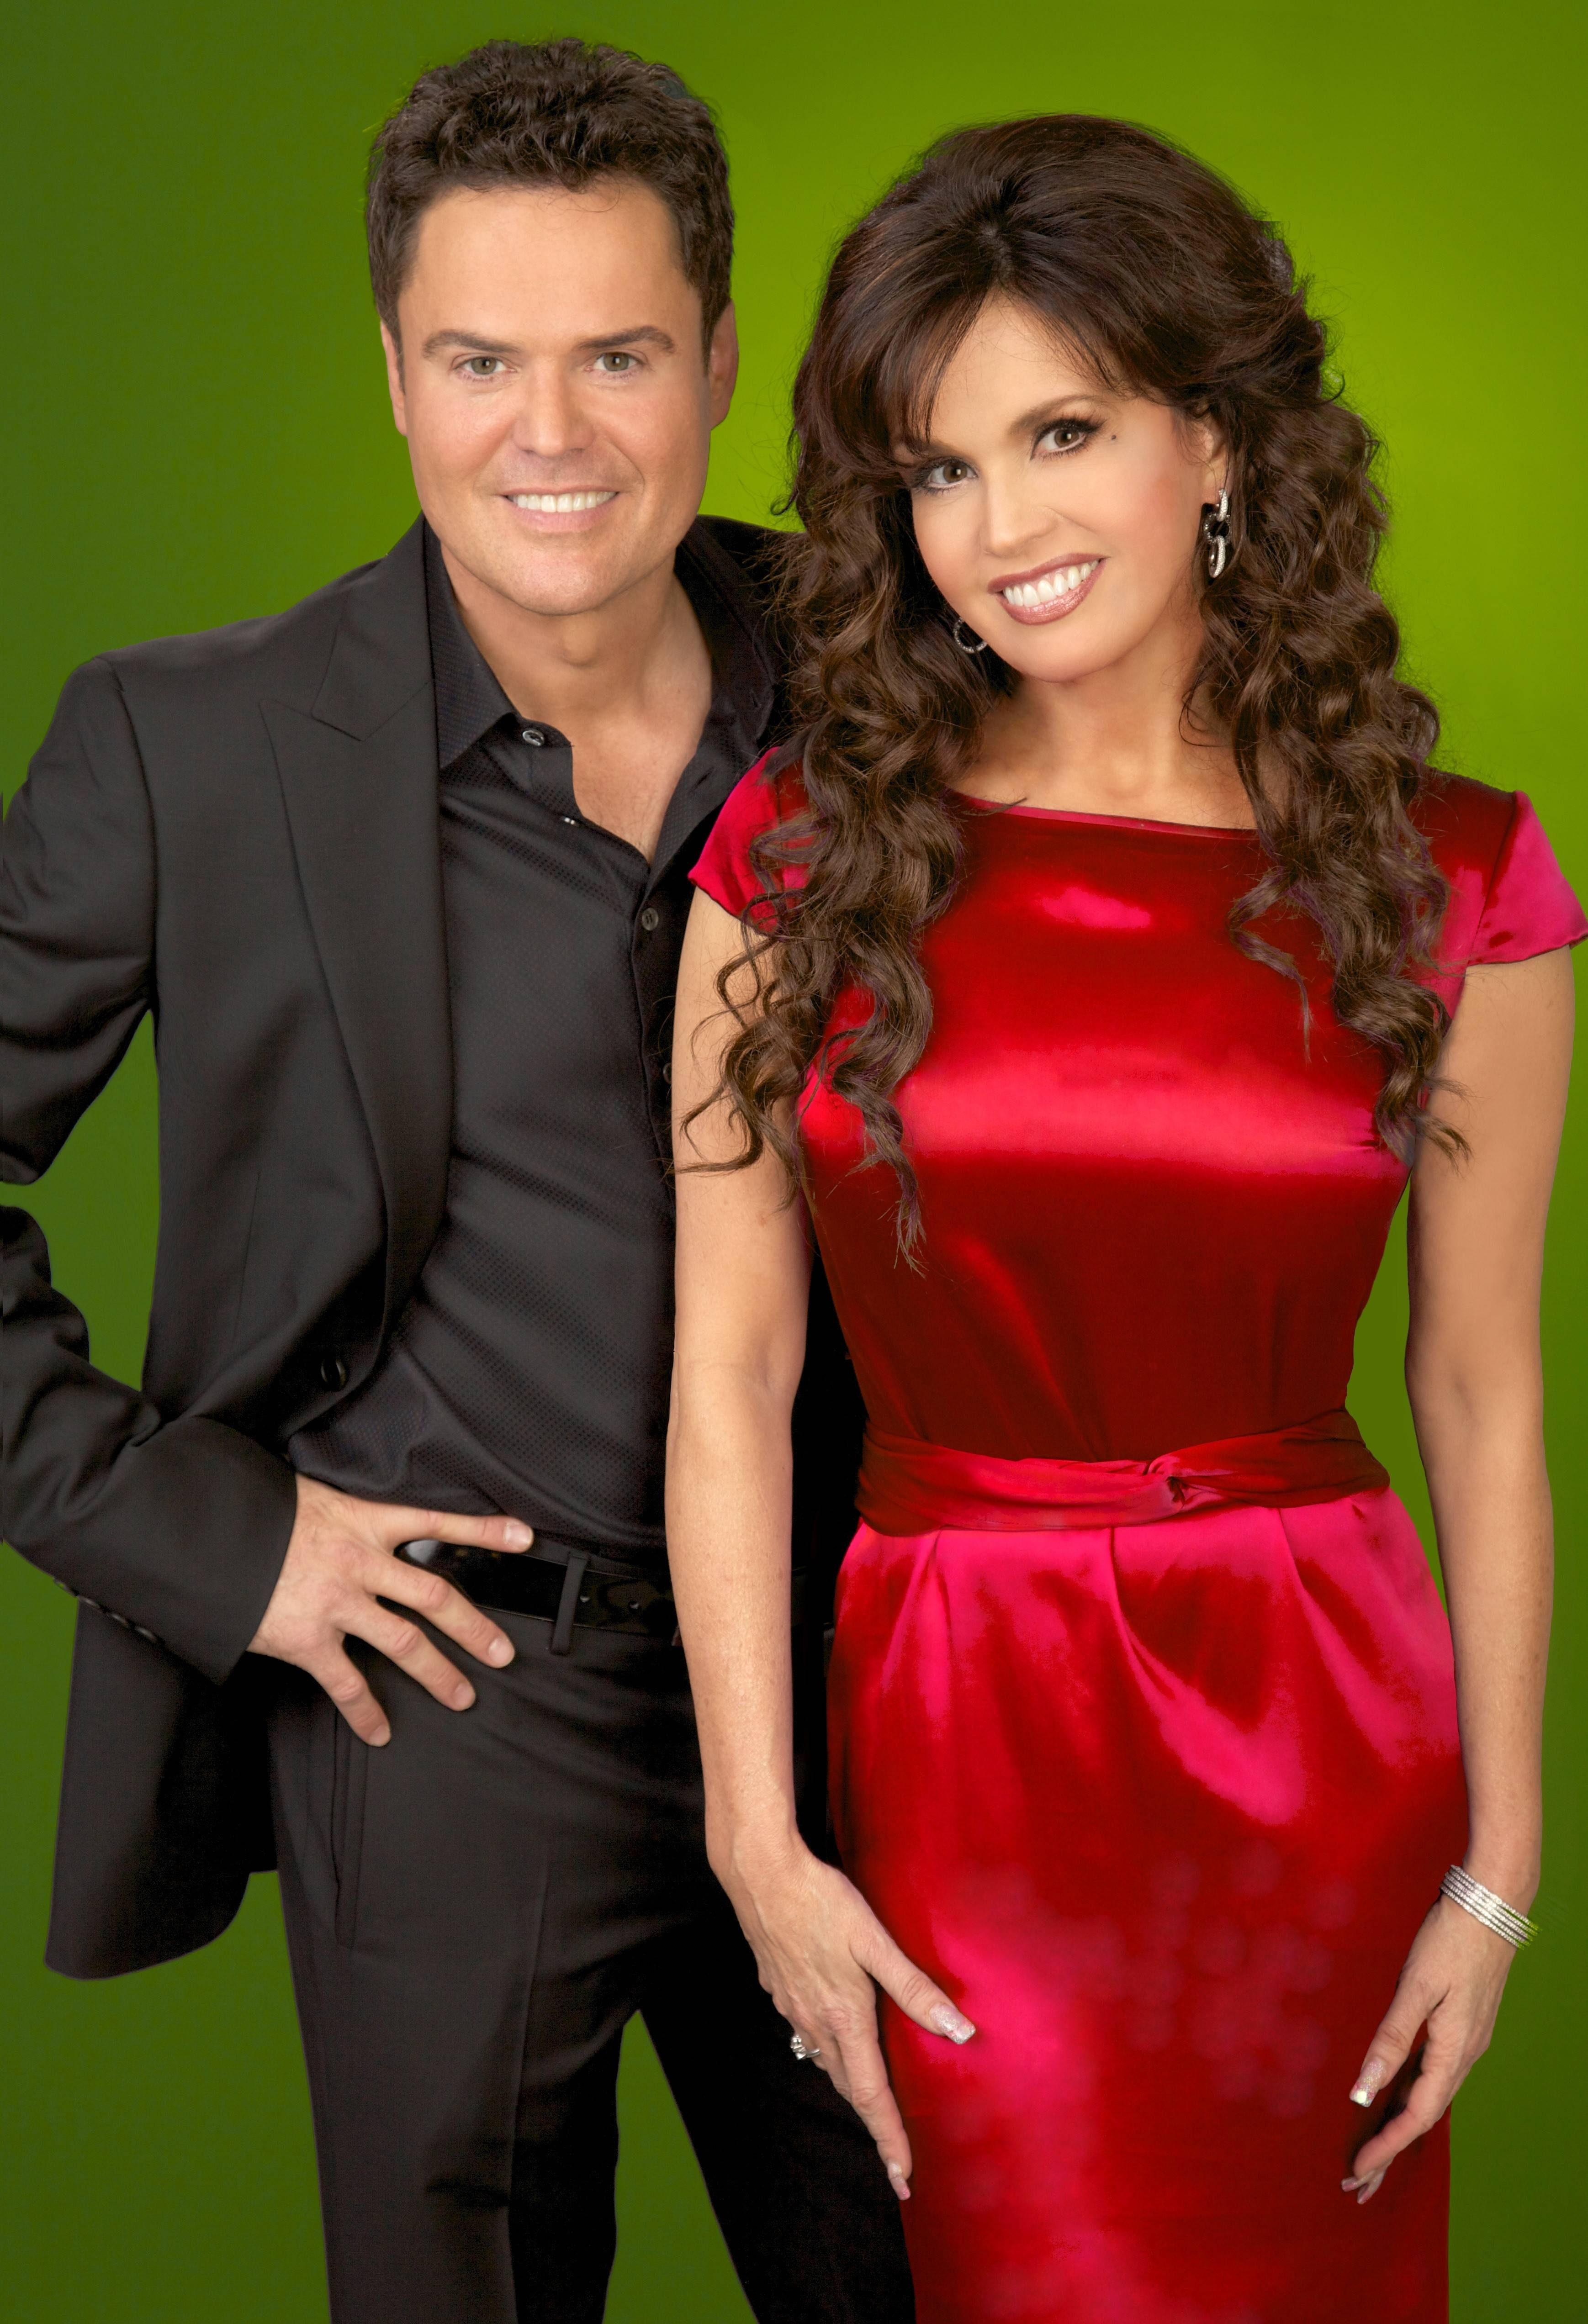 Donny and Marie Osmond perform a series of shows at the Paramount Theatre in Aurora from Wednesday, Aug. 27, through Sunday, Aug. 31.